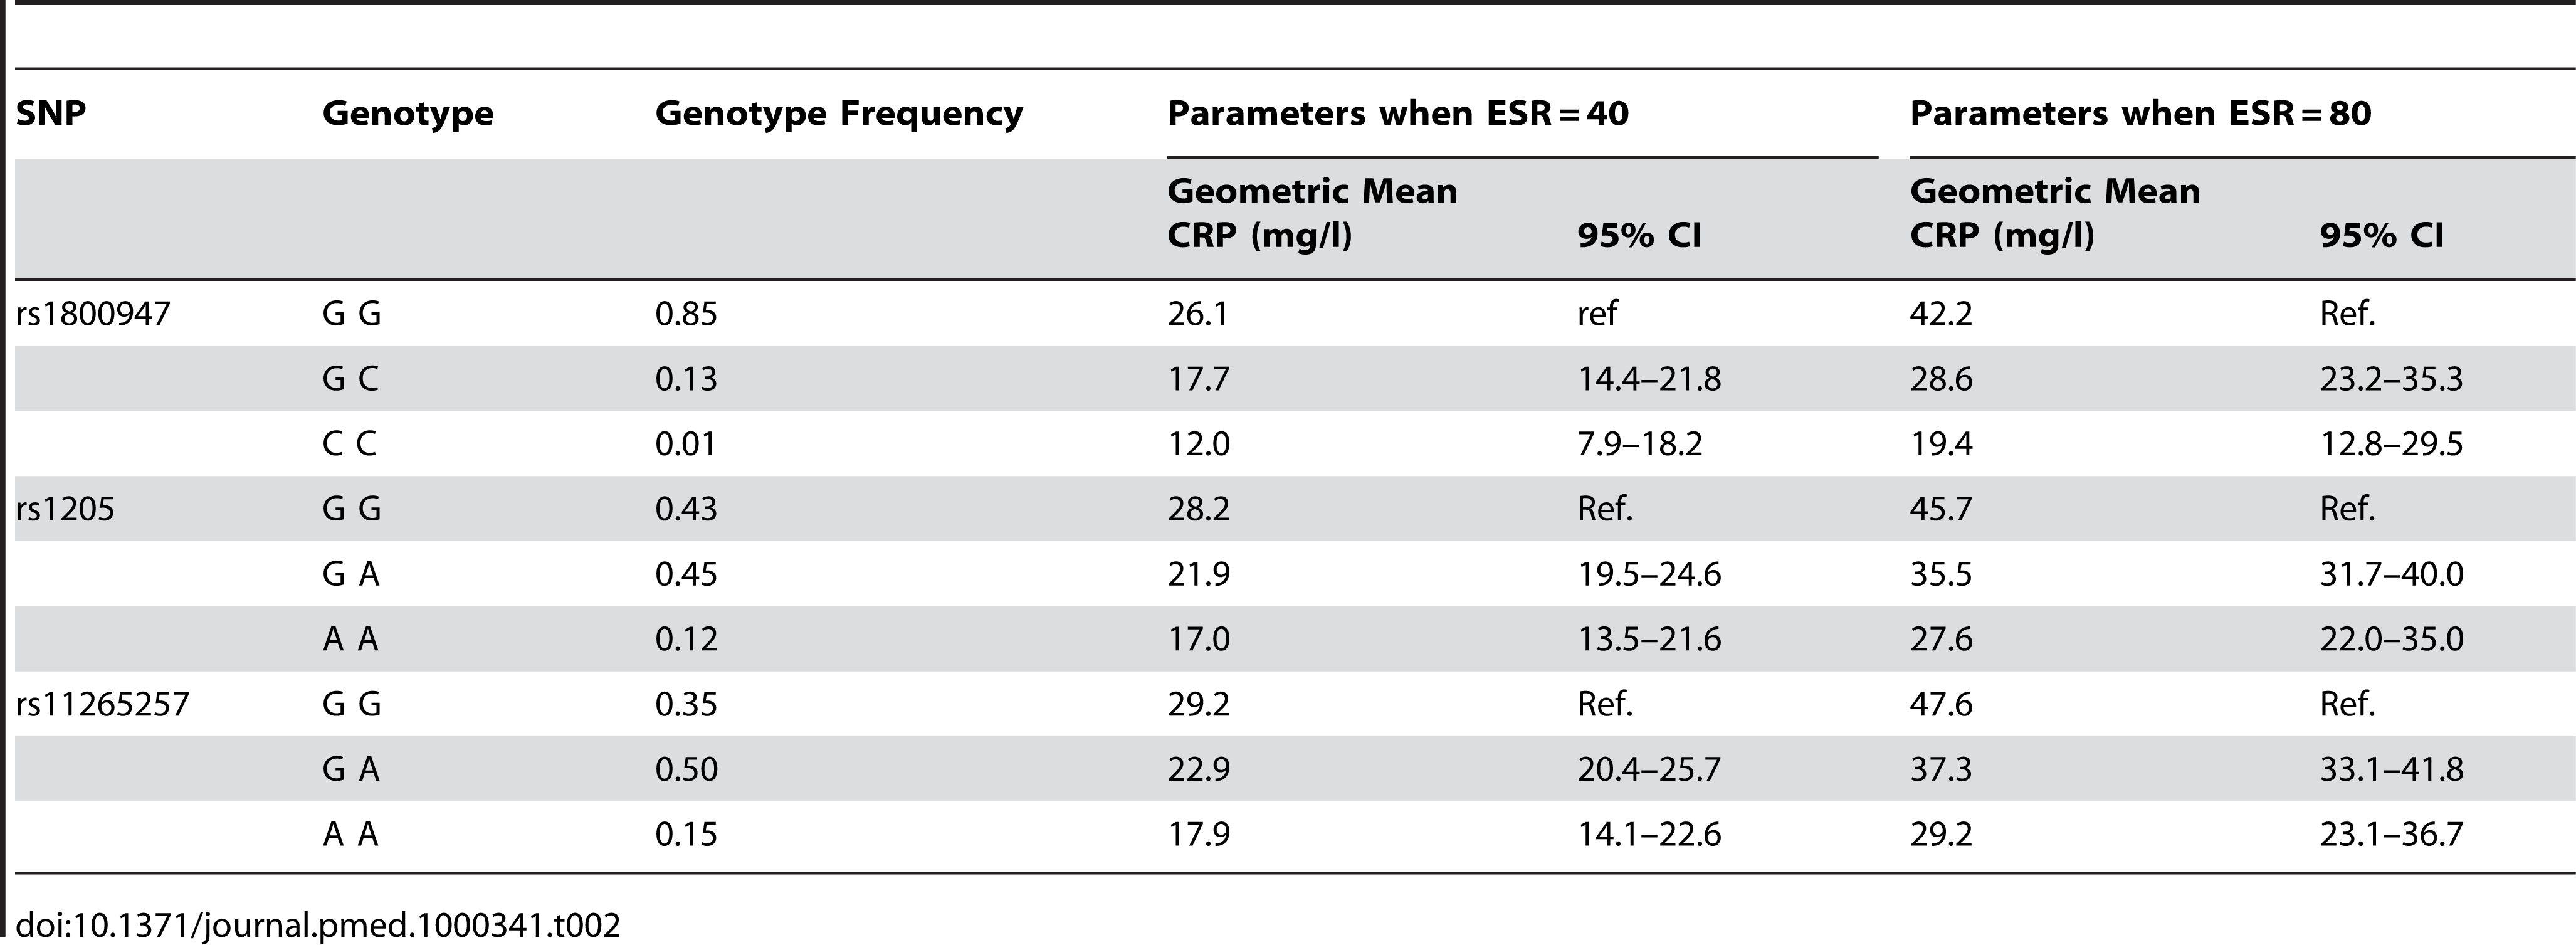 CRP parameter estimates (geometric mean) from the combined cohorts.